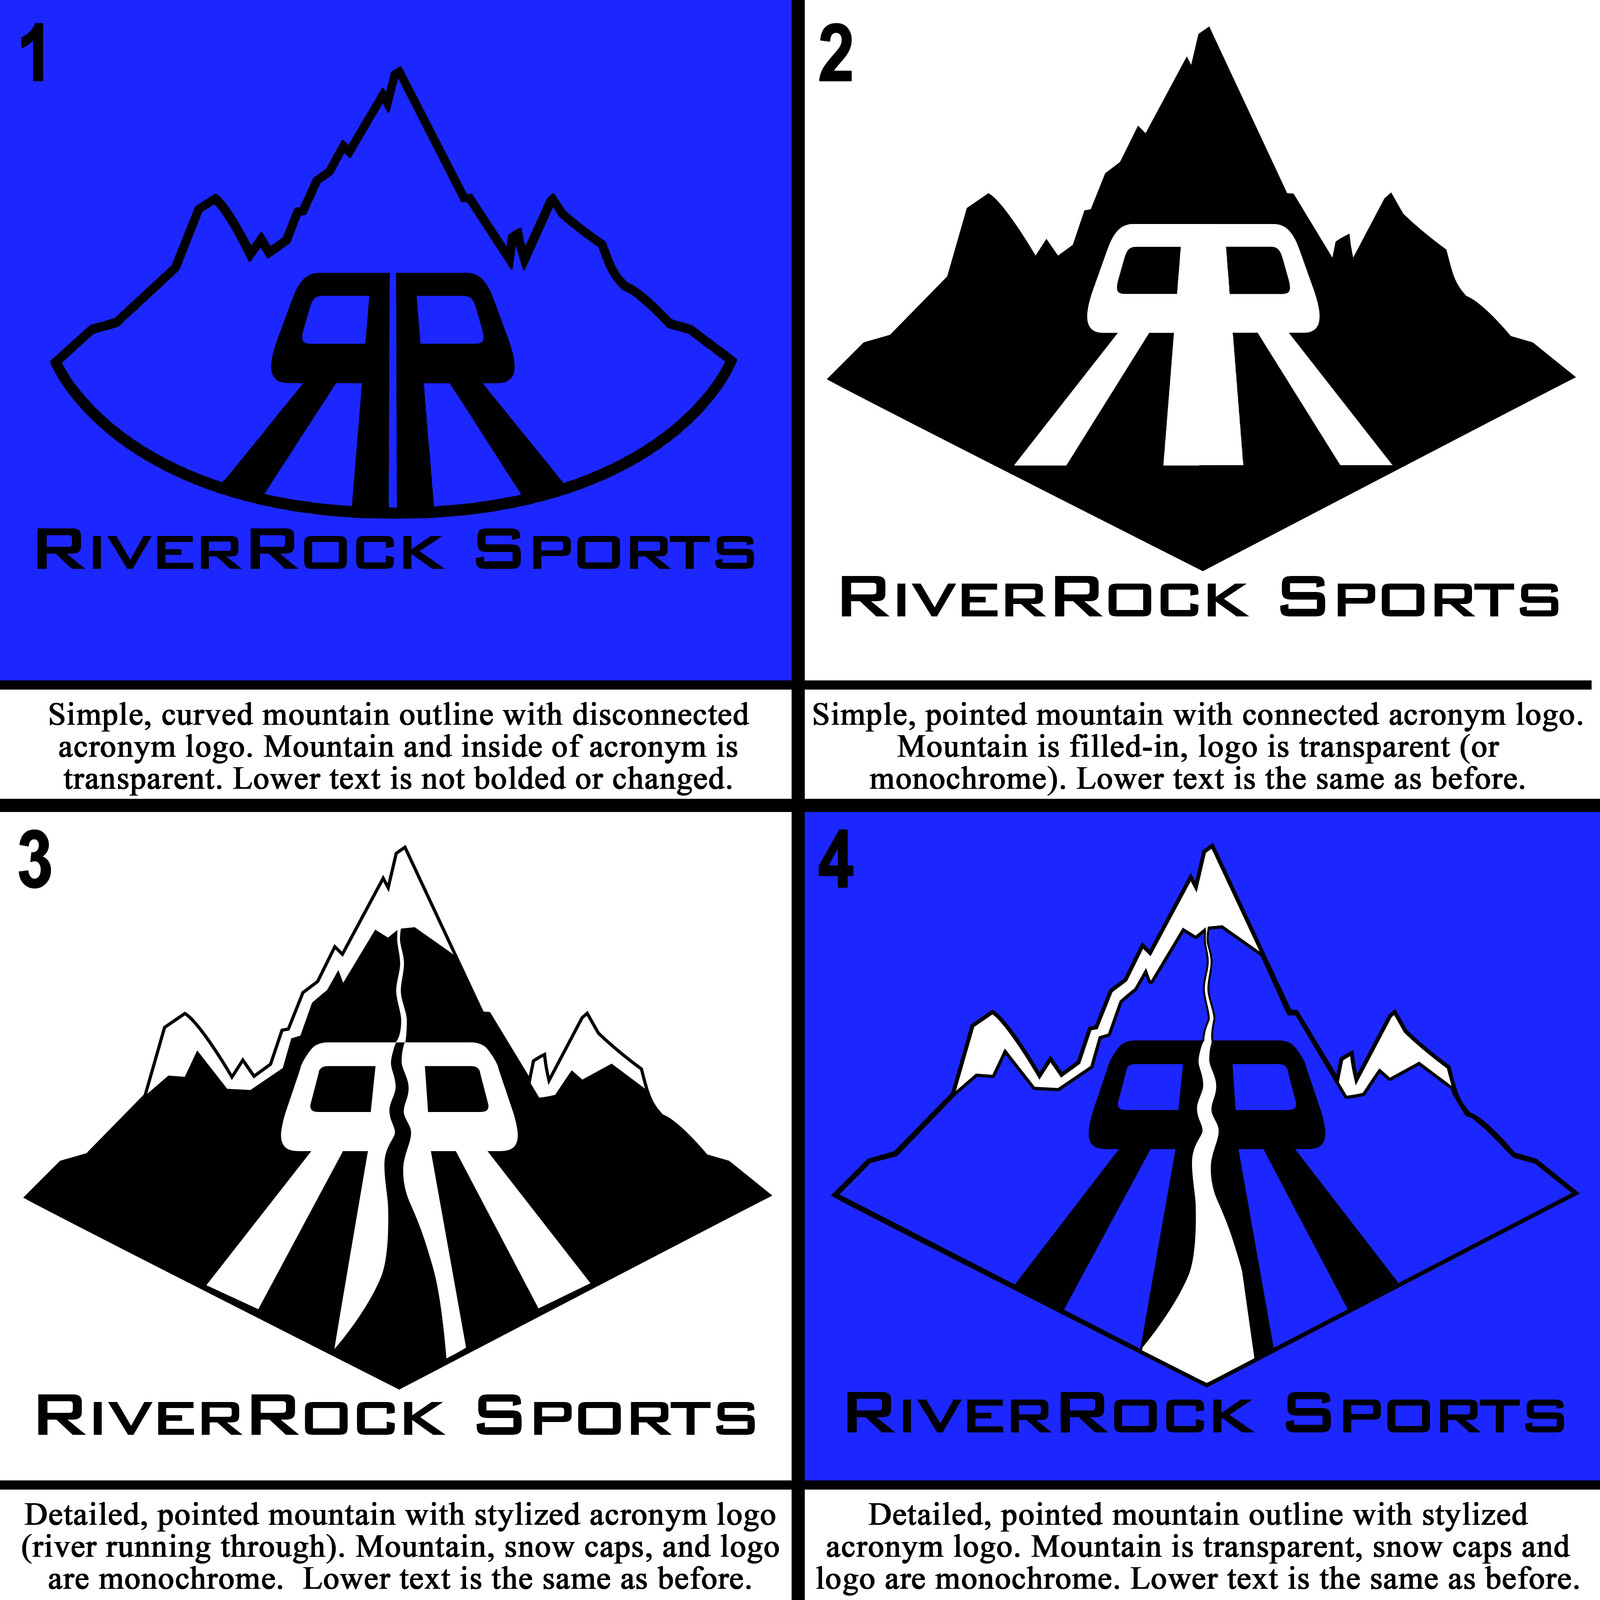 First batch of concepts for the RiverRocks logo